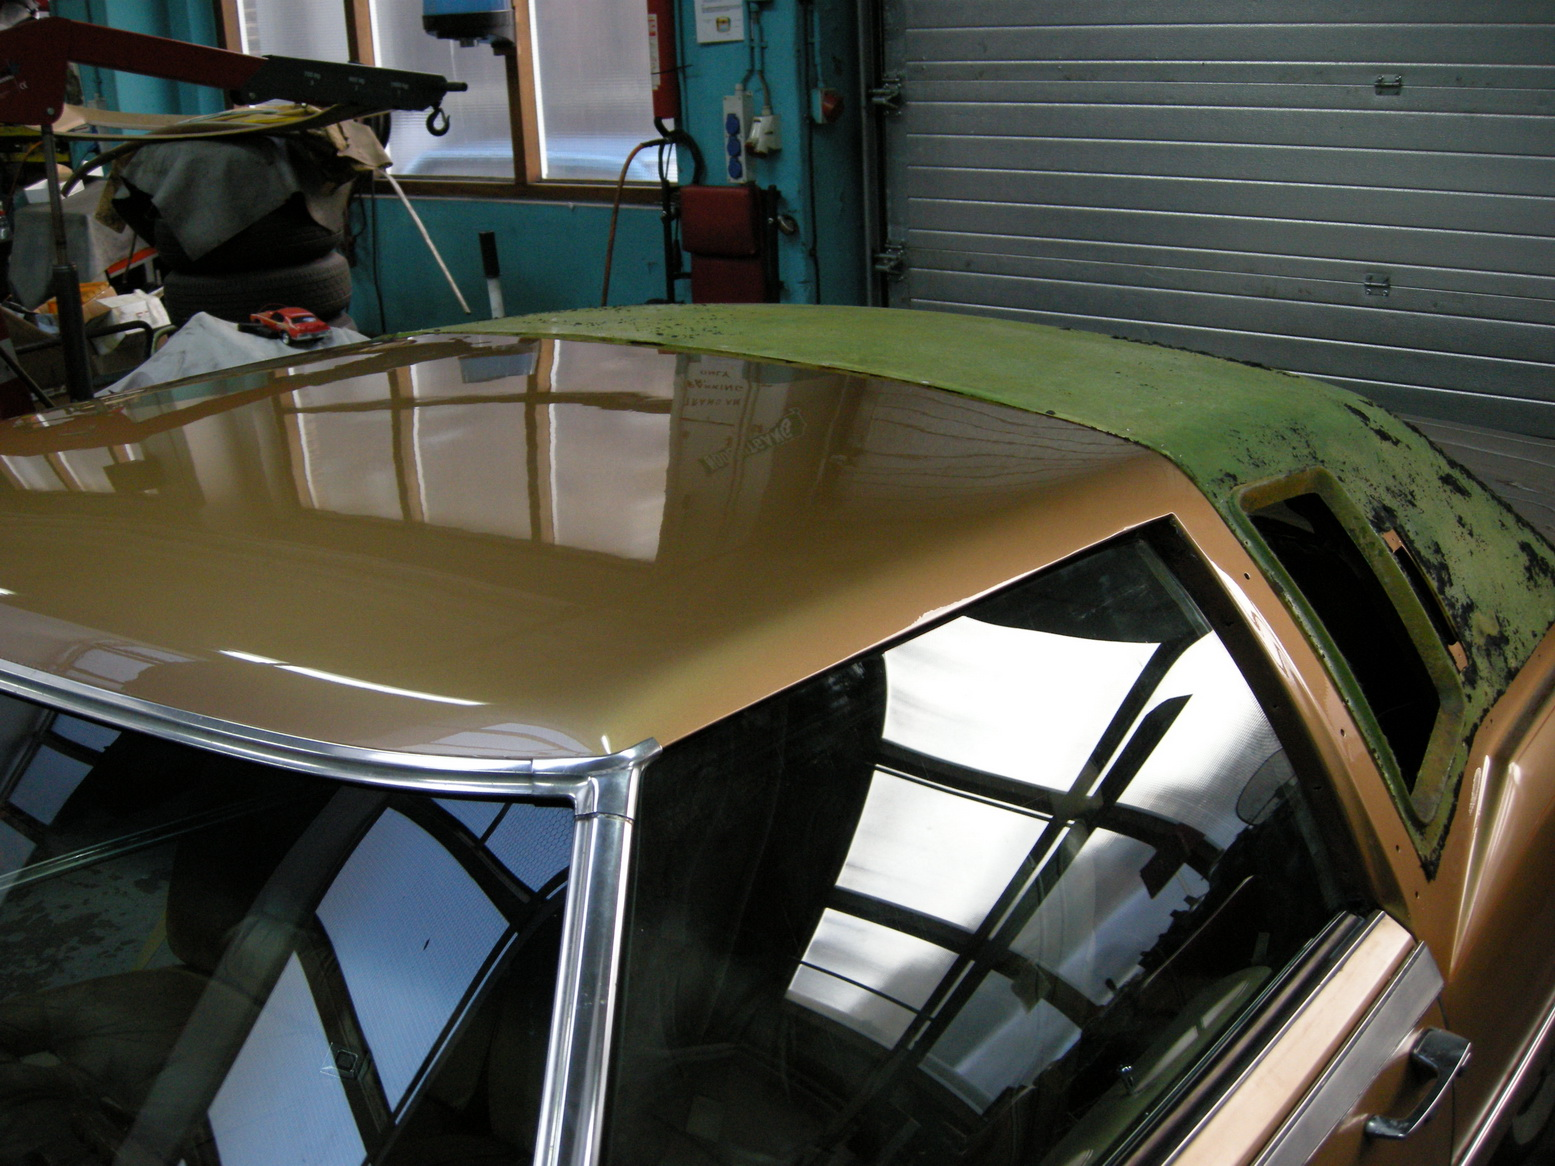 20101209 1977 cadillac eldorado biarritz roof nearly done 06